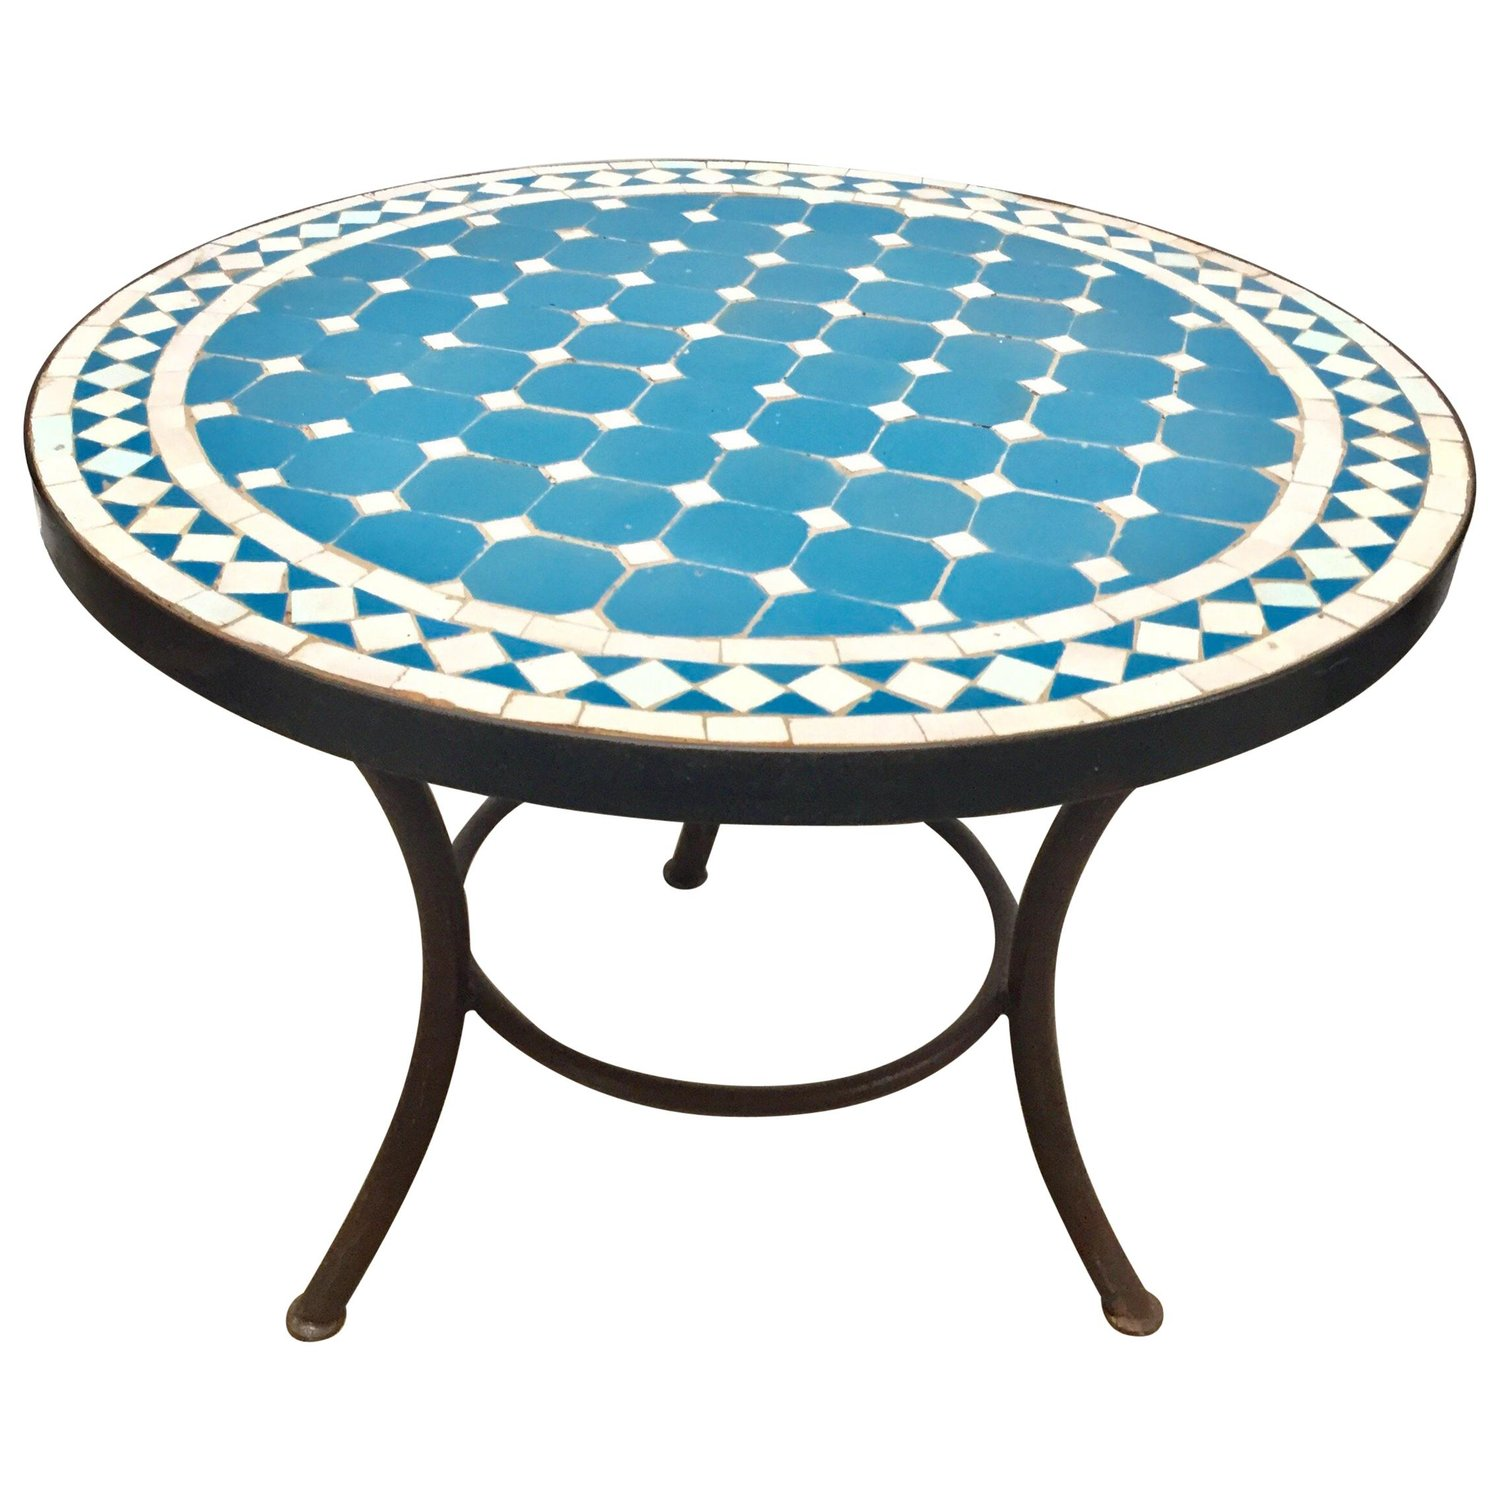 moroccan mosaic outdoor blue tile side table low iron base for master laflorn chairside end top furniture meyda tiffany lamp bases plexiglass coffee acrylic nesting tables